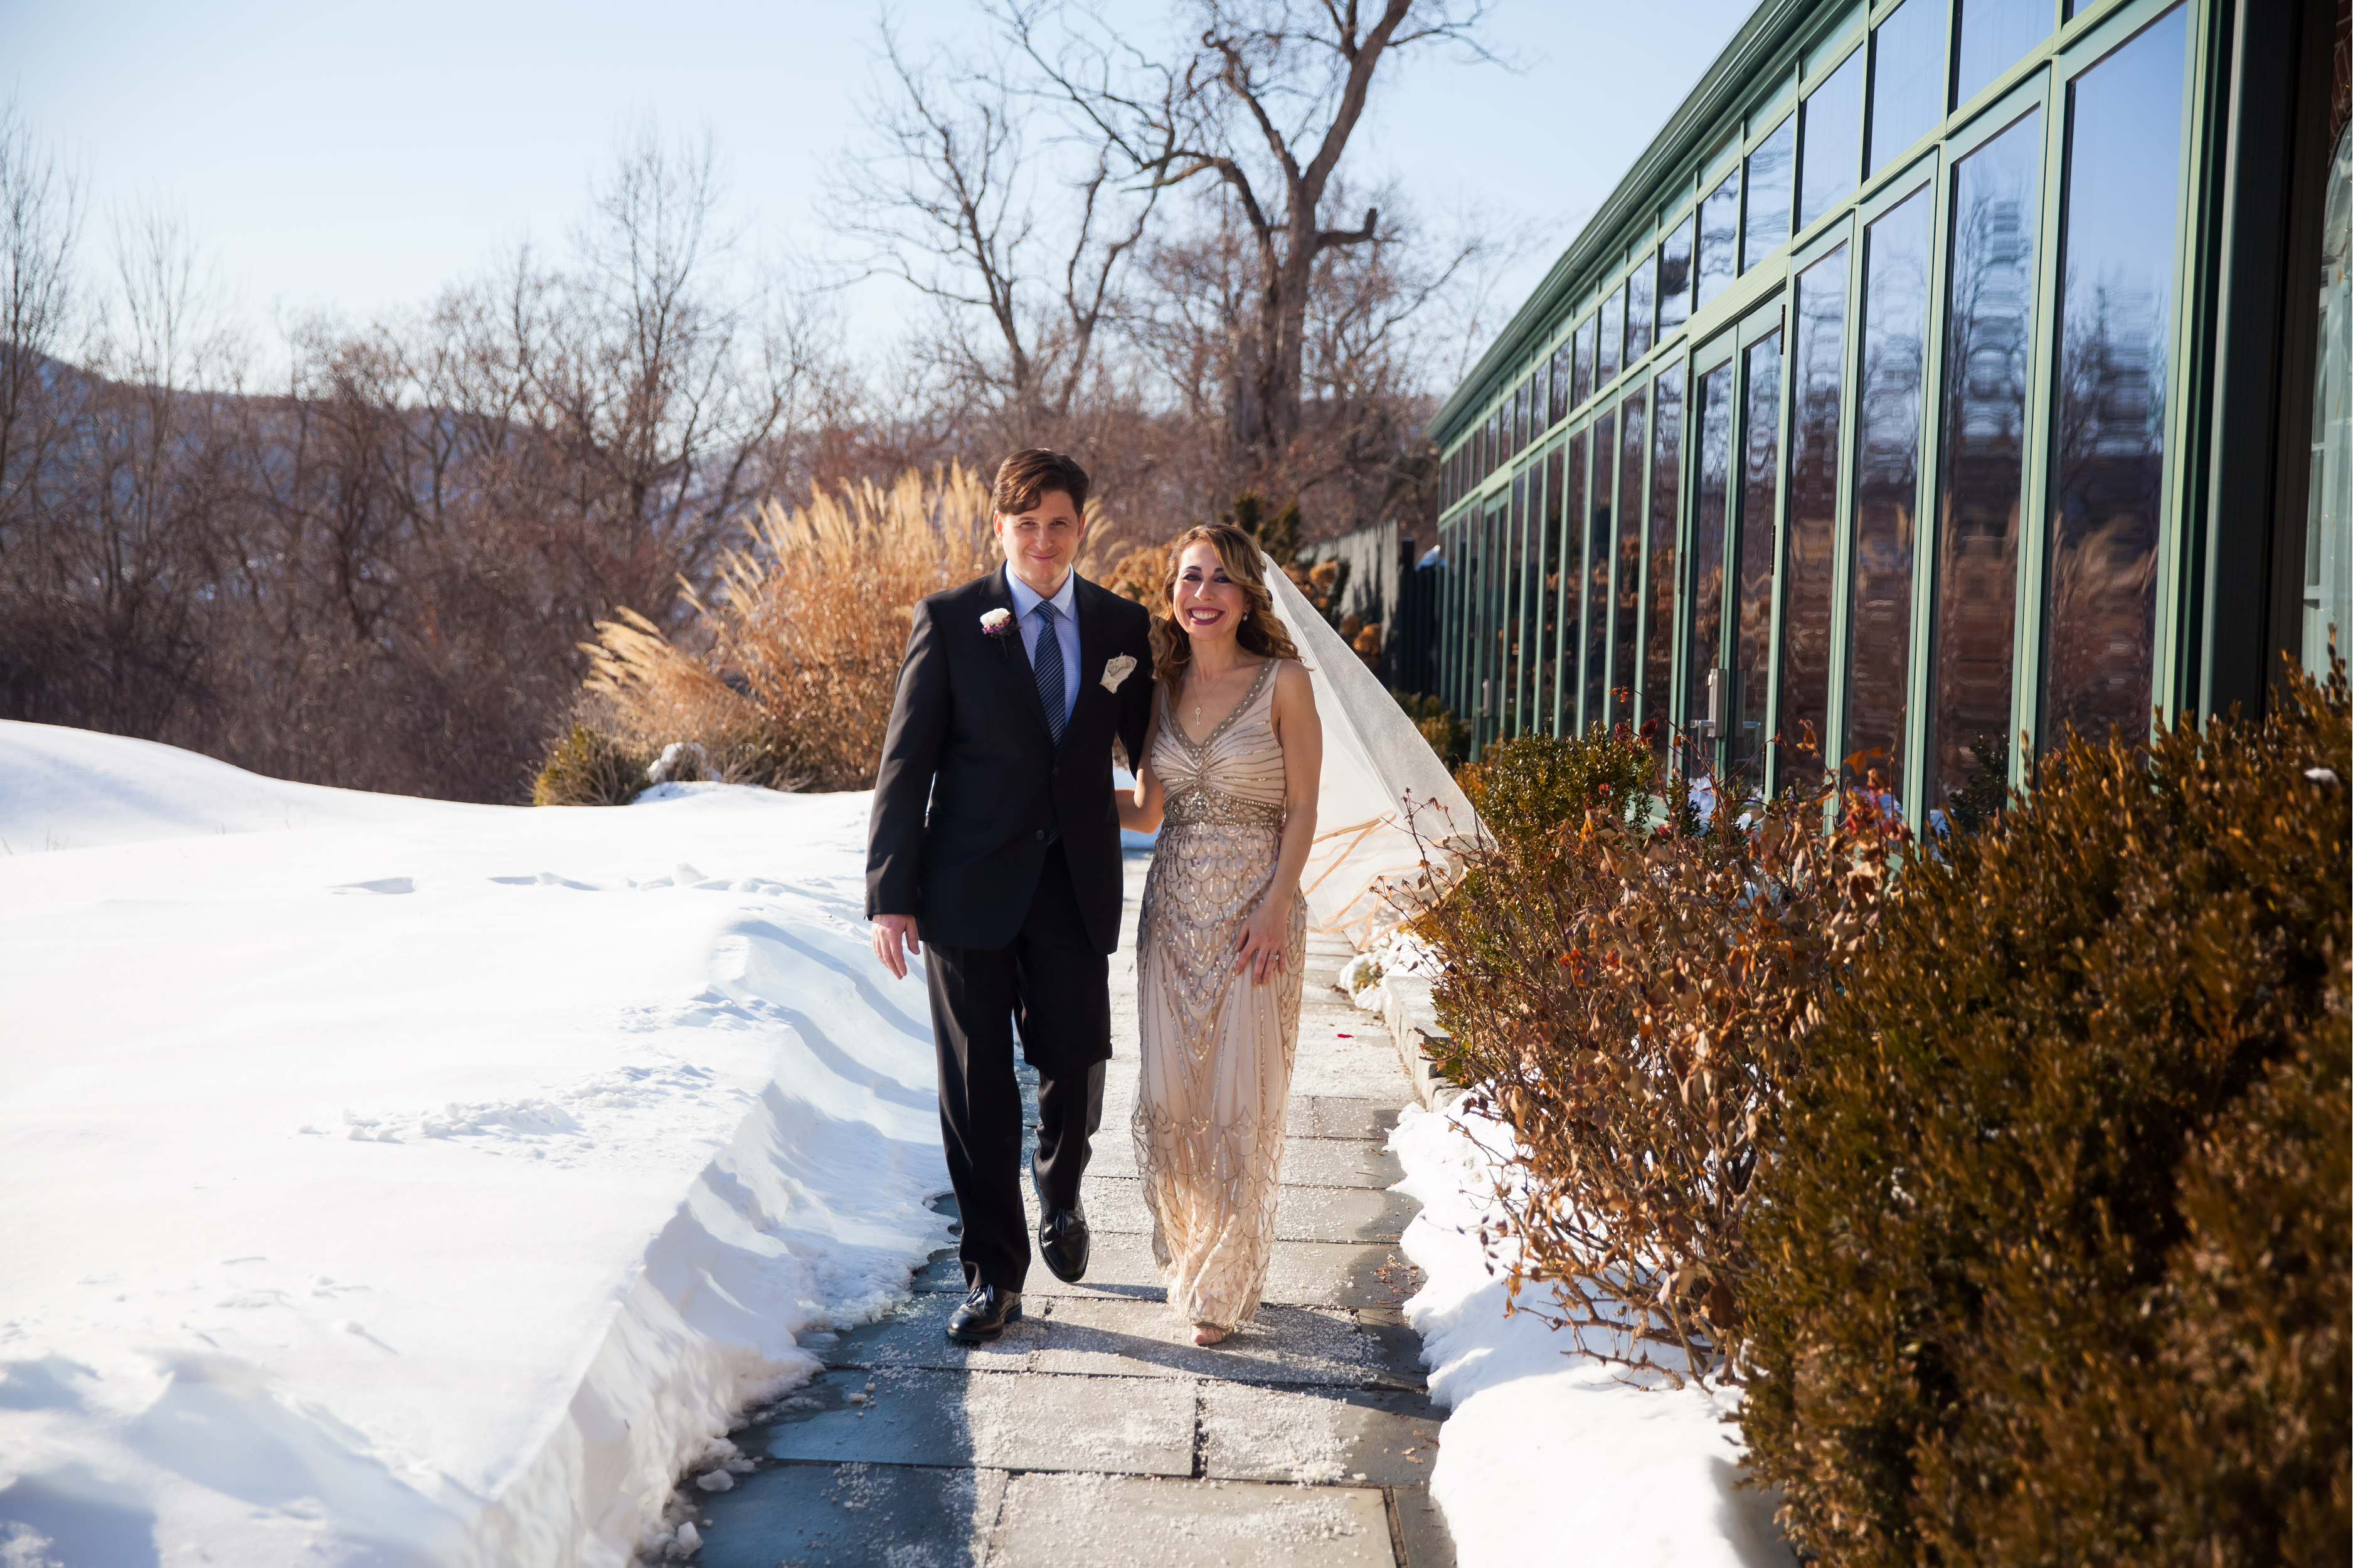 Emma_cleary_photography Highlands Country Club Wedding14